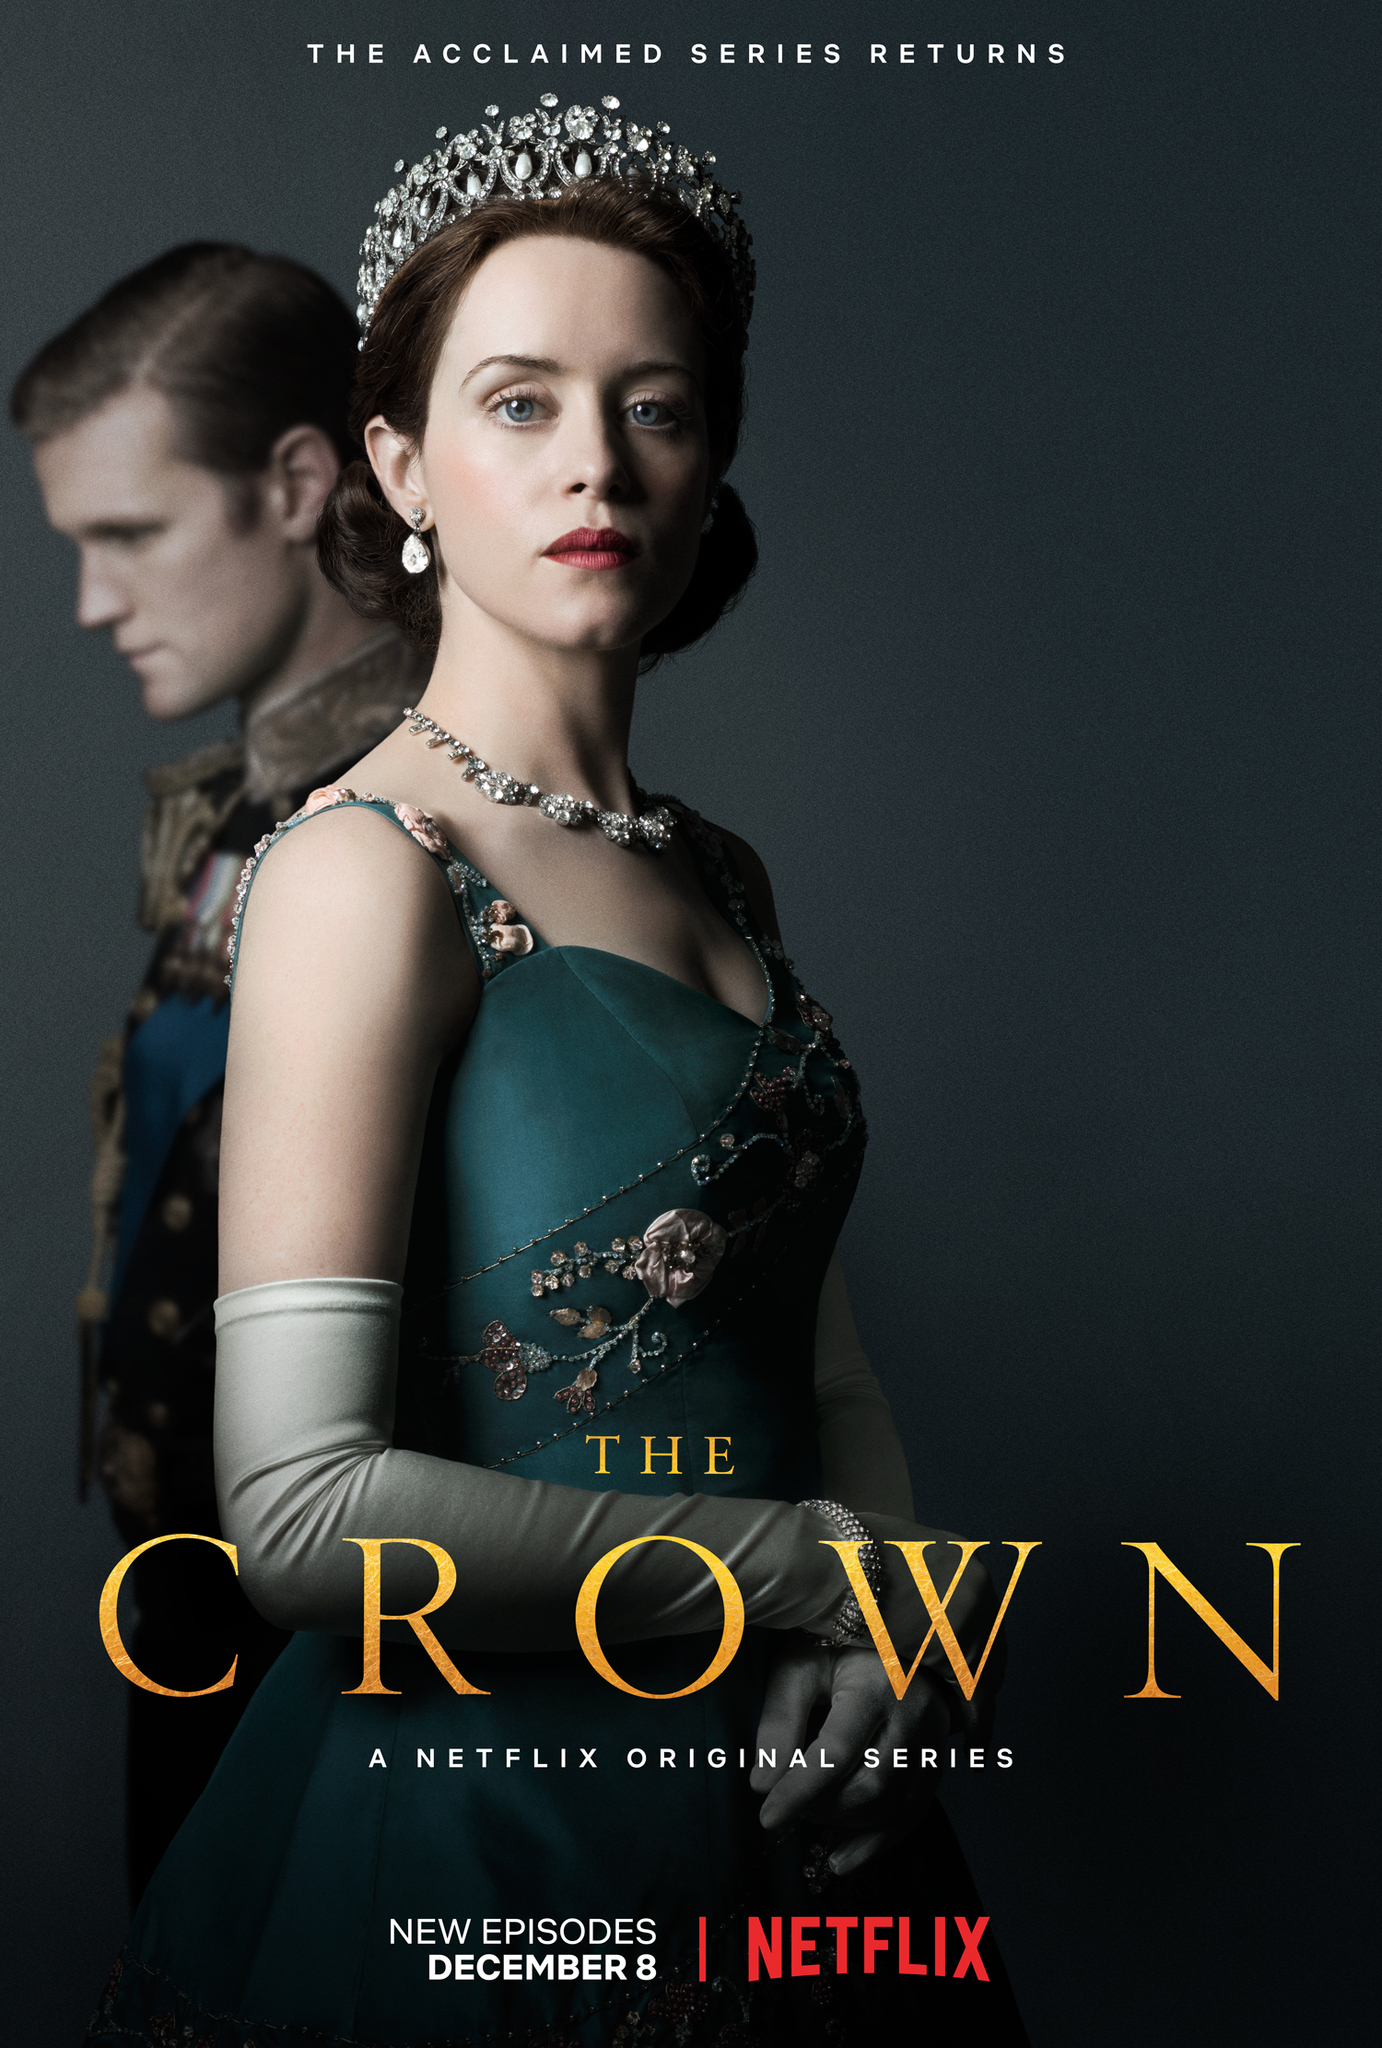 The.Crown.S02E05.iNTERNAL.MULTi.1080p.WEB.x264-CiELOS